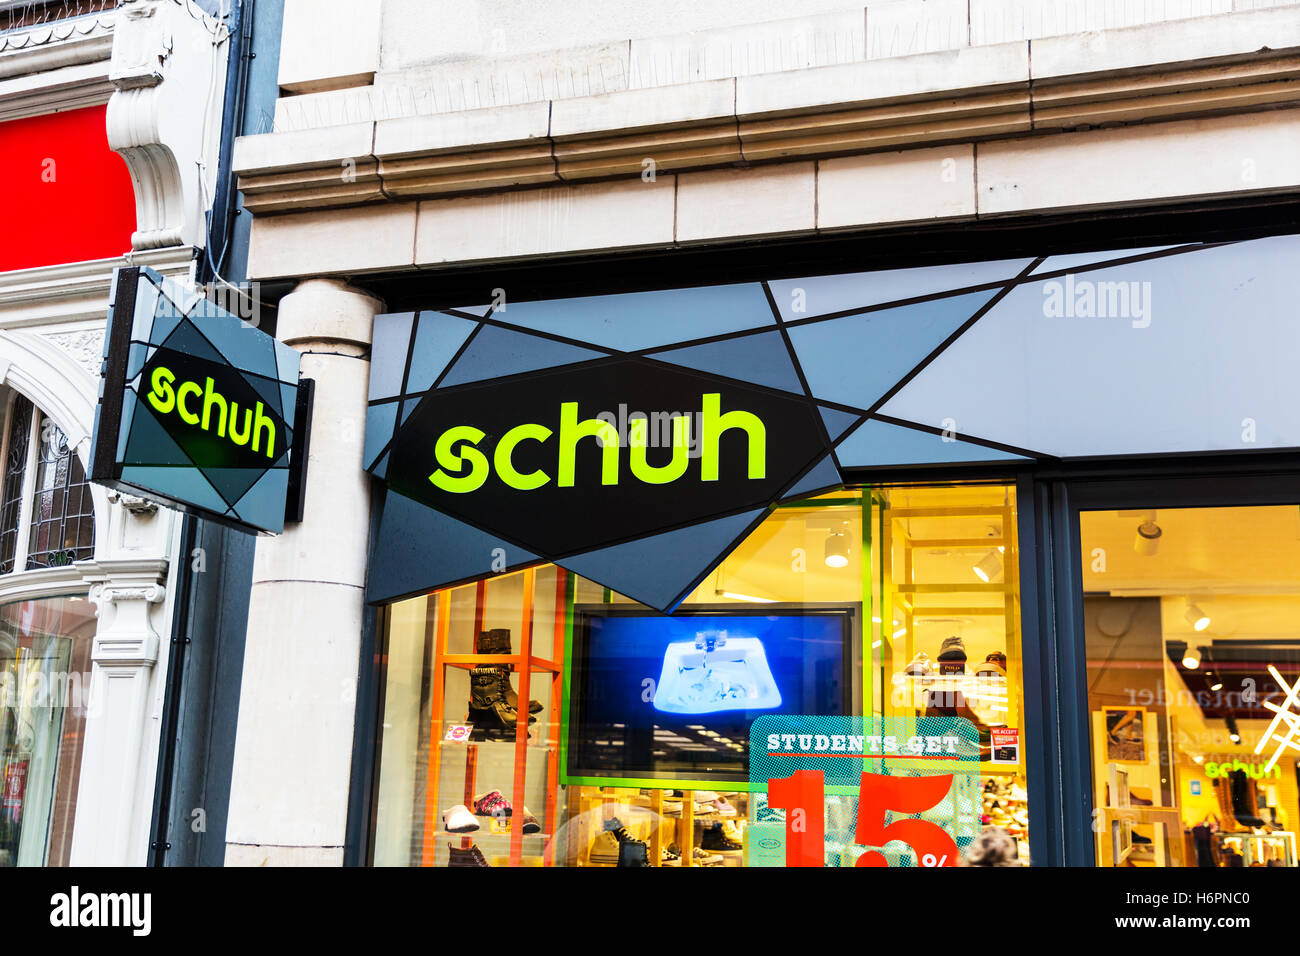 Schuh shoe shop footwear shoes clothing store high street shops Nottingham UK GB England sign exterior front facade - Stock Image